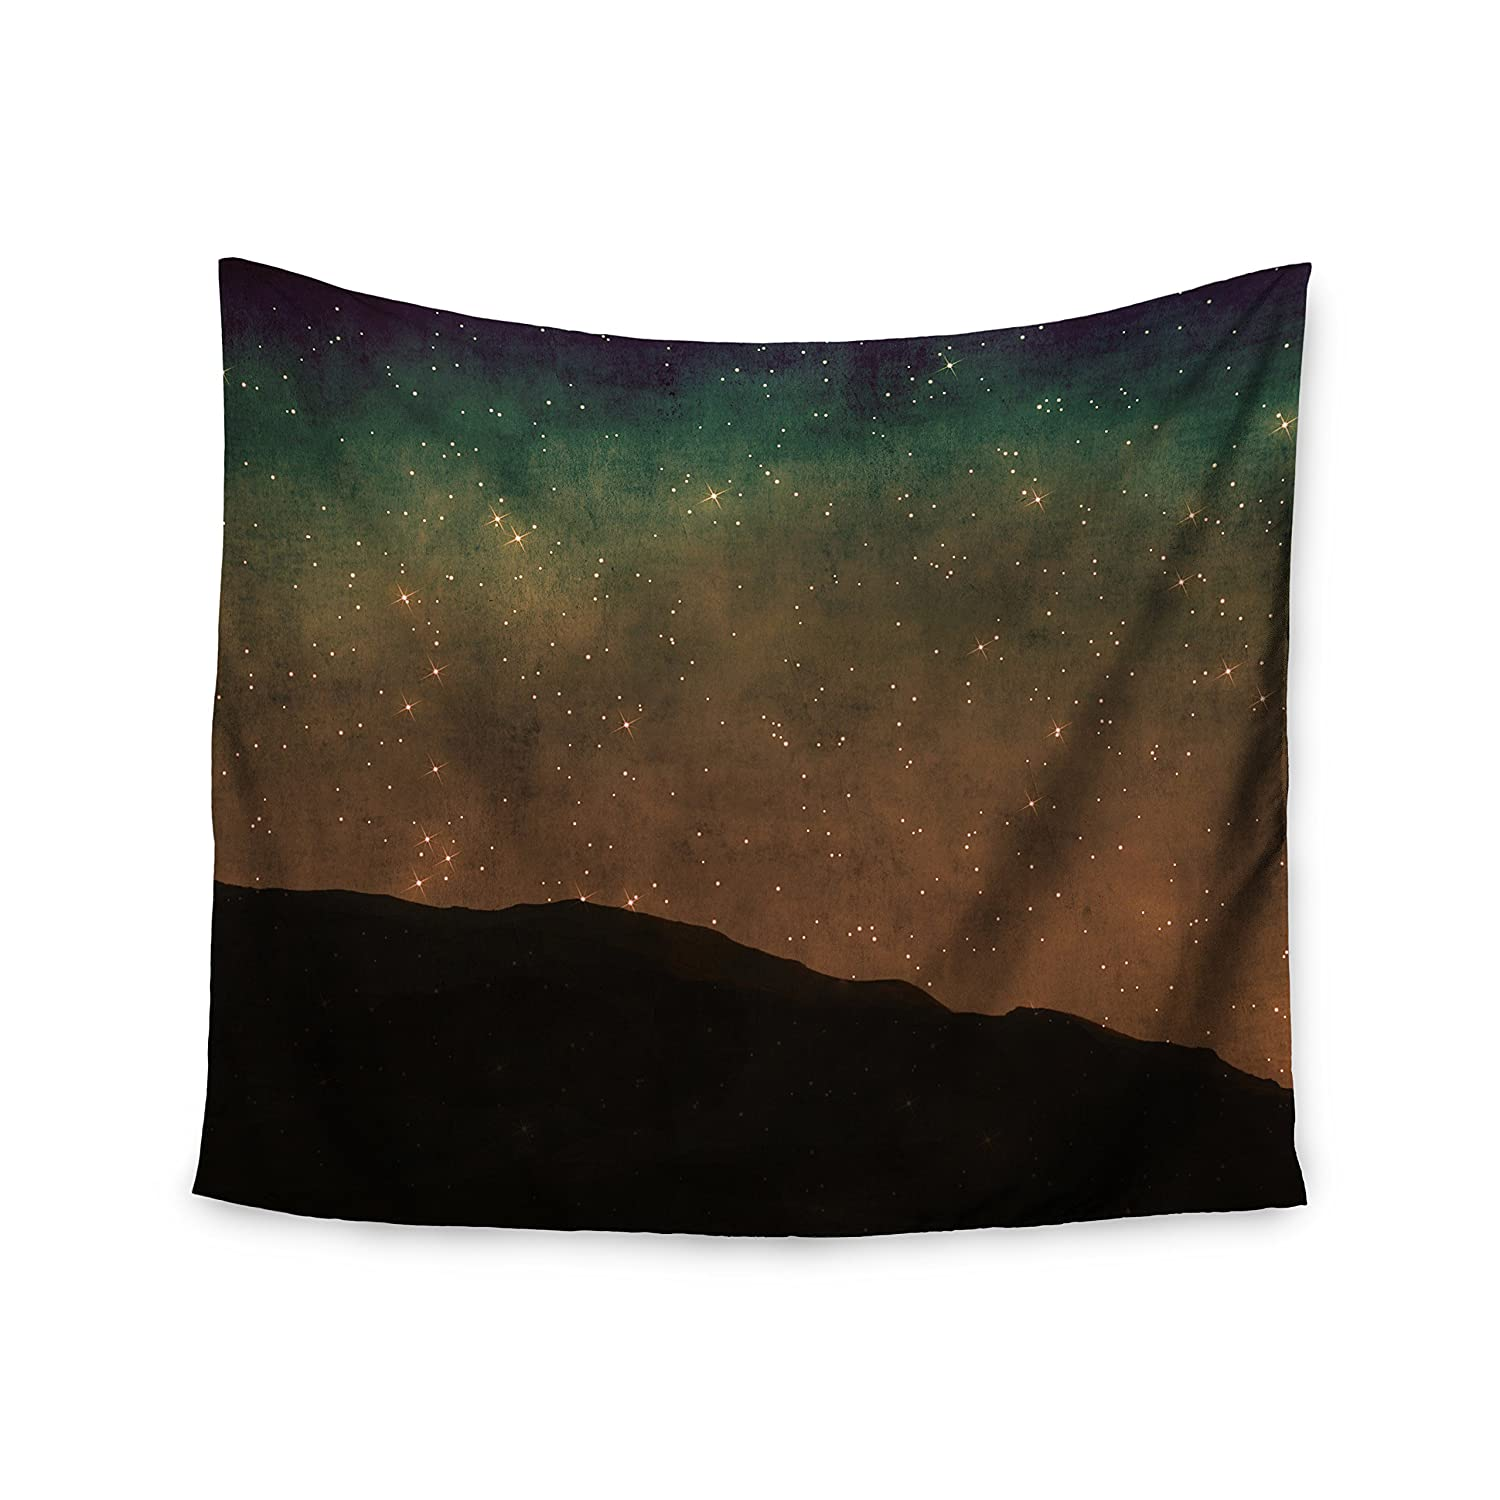 51 X 60 Kess InHouse Sylvia Coomes Star Light Teal Brown Wall Tapestry